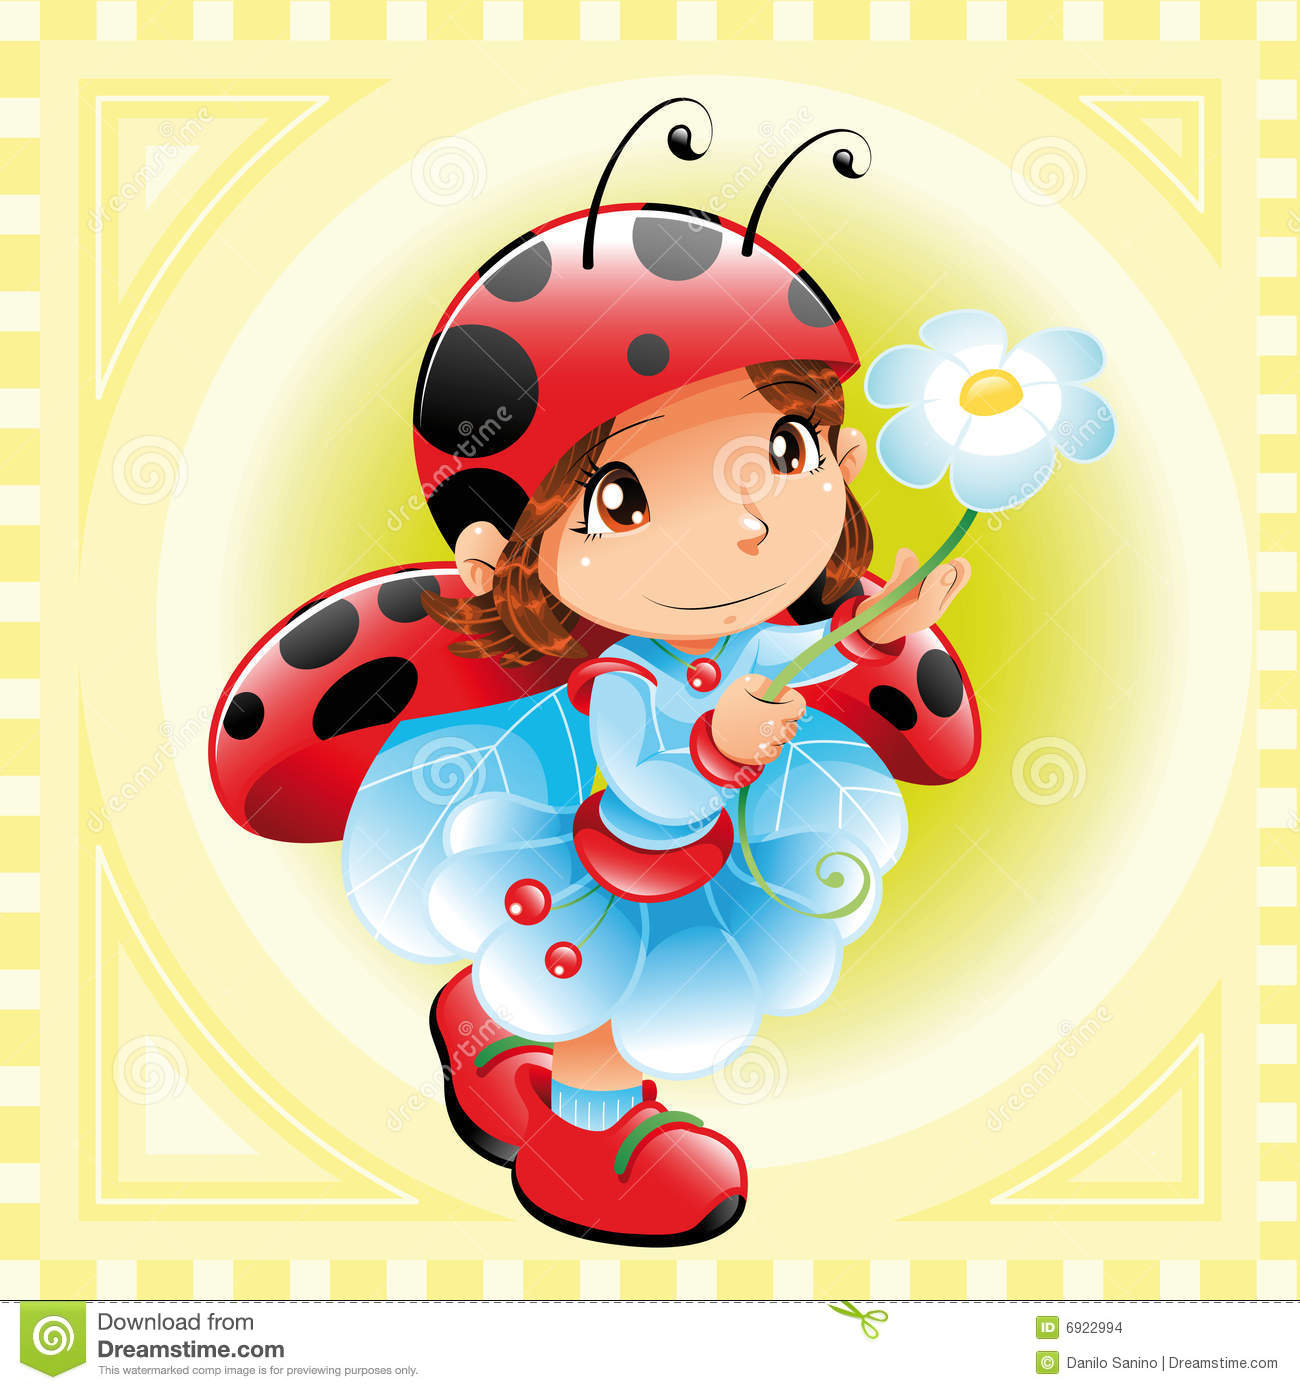 Funny congratulations ladybug clipart clipart kid Vector image software